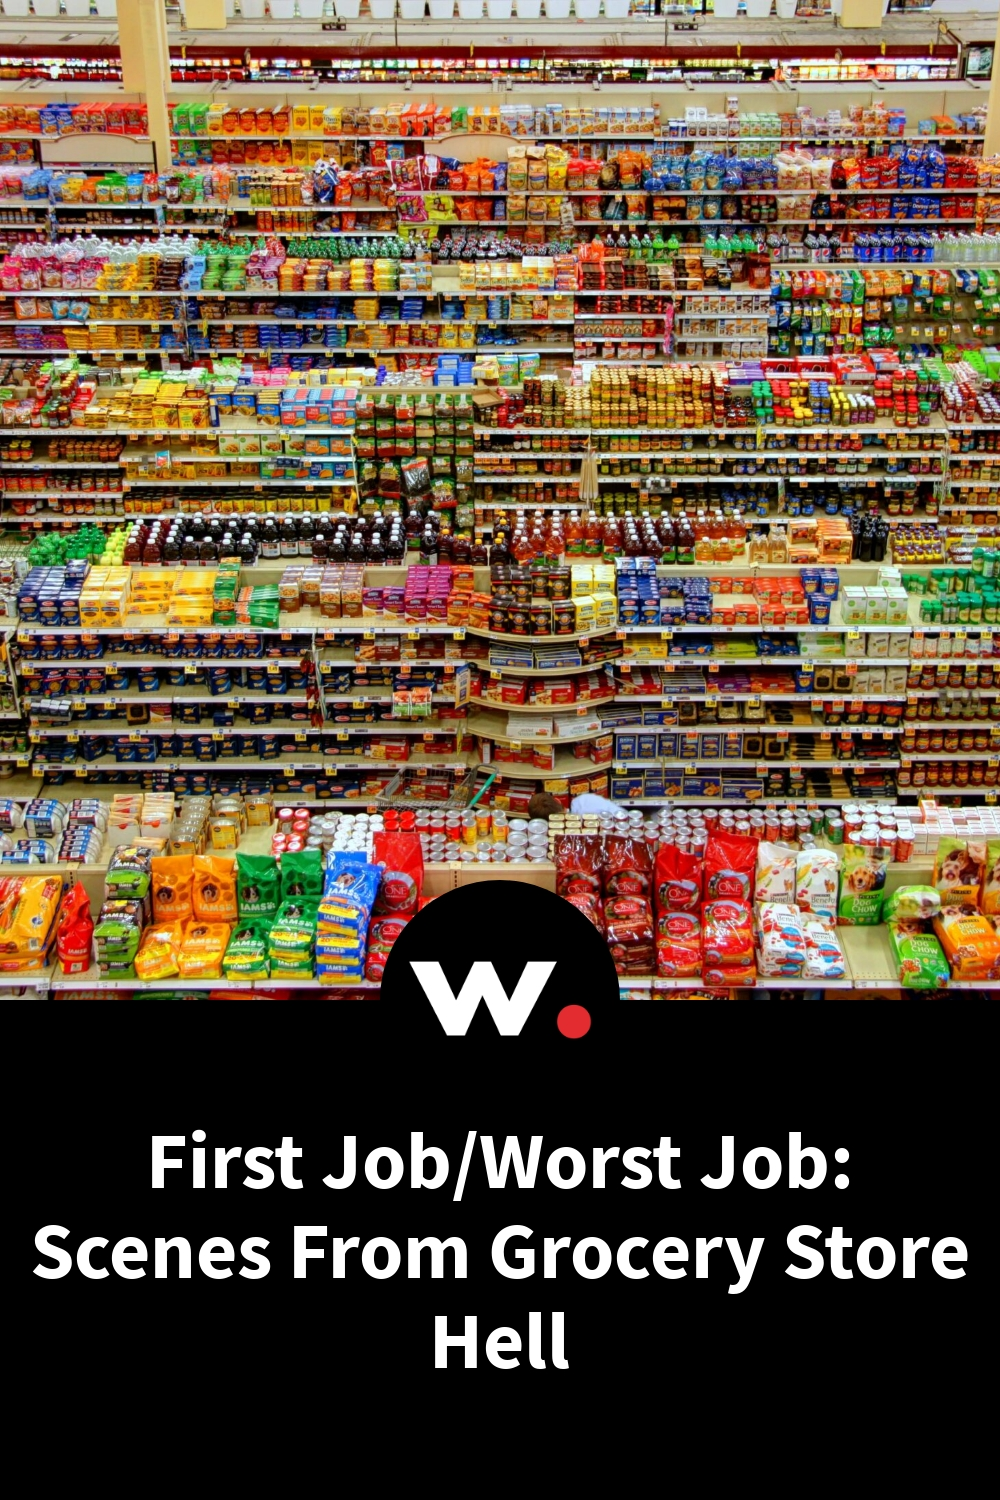 First Job/Worst Job: Scenes From Grocery Store Hell